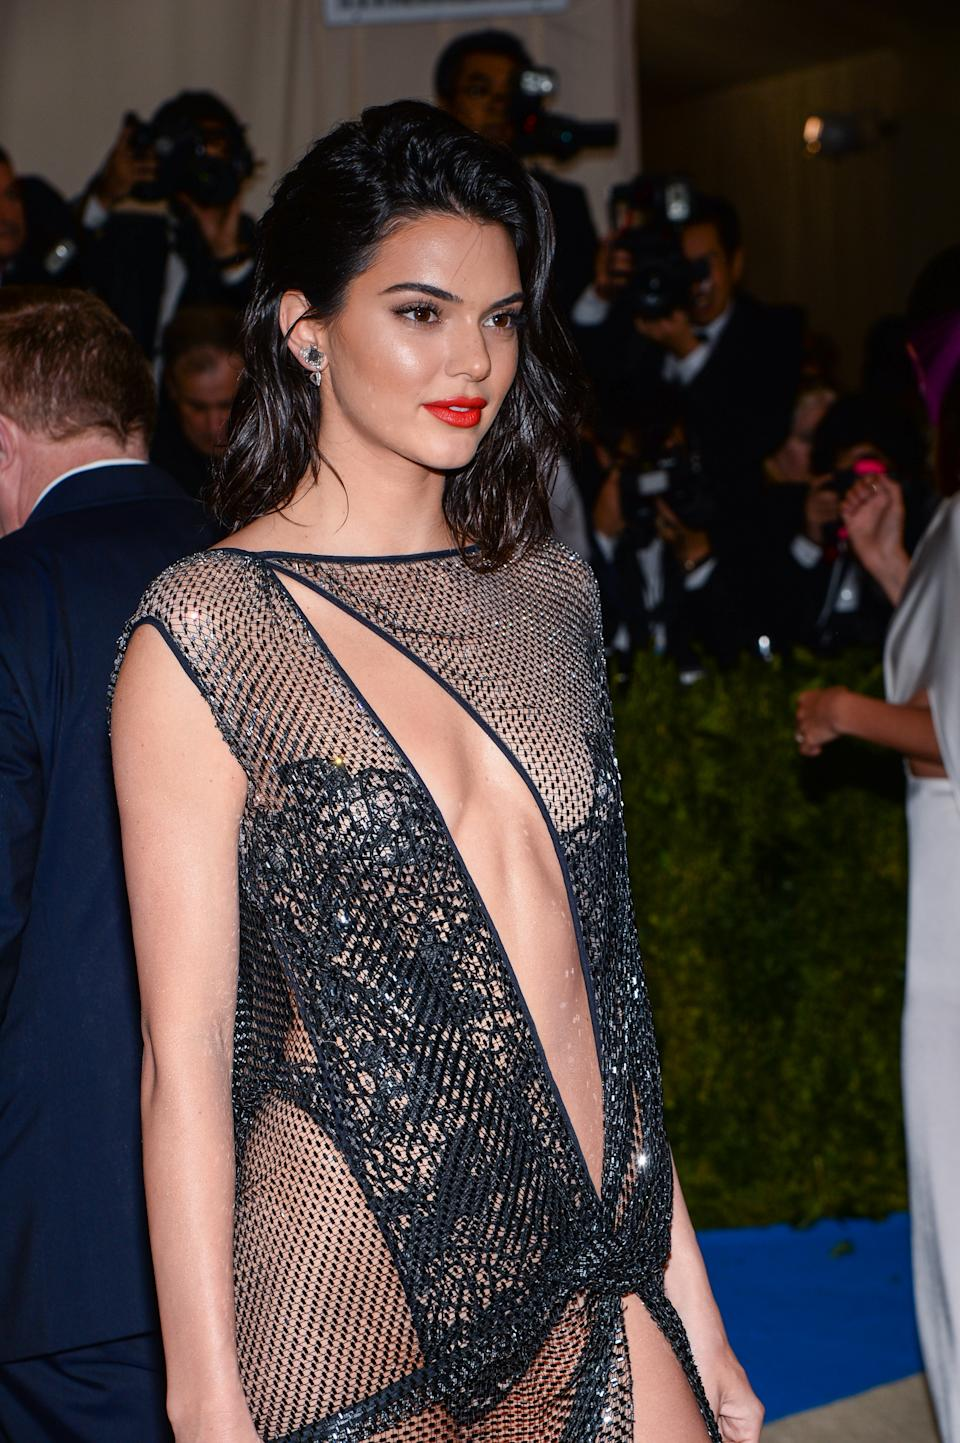 Kendall Jenner arriving at The Metropolitan Museum of Art Costume Institute Benefit celebrating the opening of Rei Kawakubo / Comme des Garcons : Art of the In-Between held at The Metropolitan Museum of Art in New York, NY, on May 1, 2017. (Photo by Anthony Behar) *** Please Use Credit from Credit Field ***